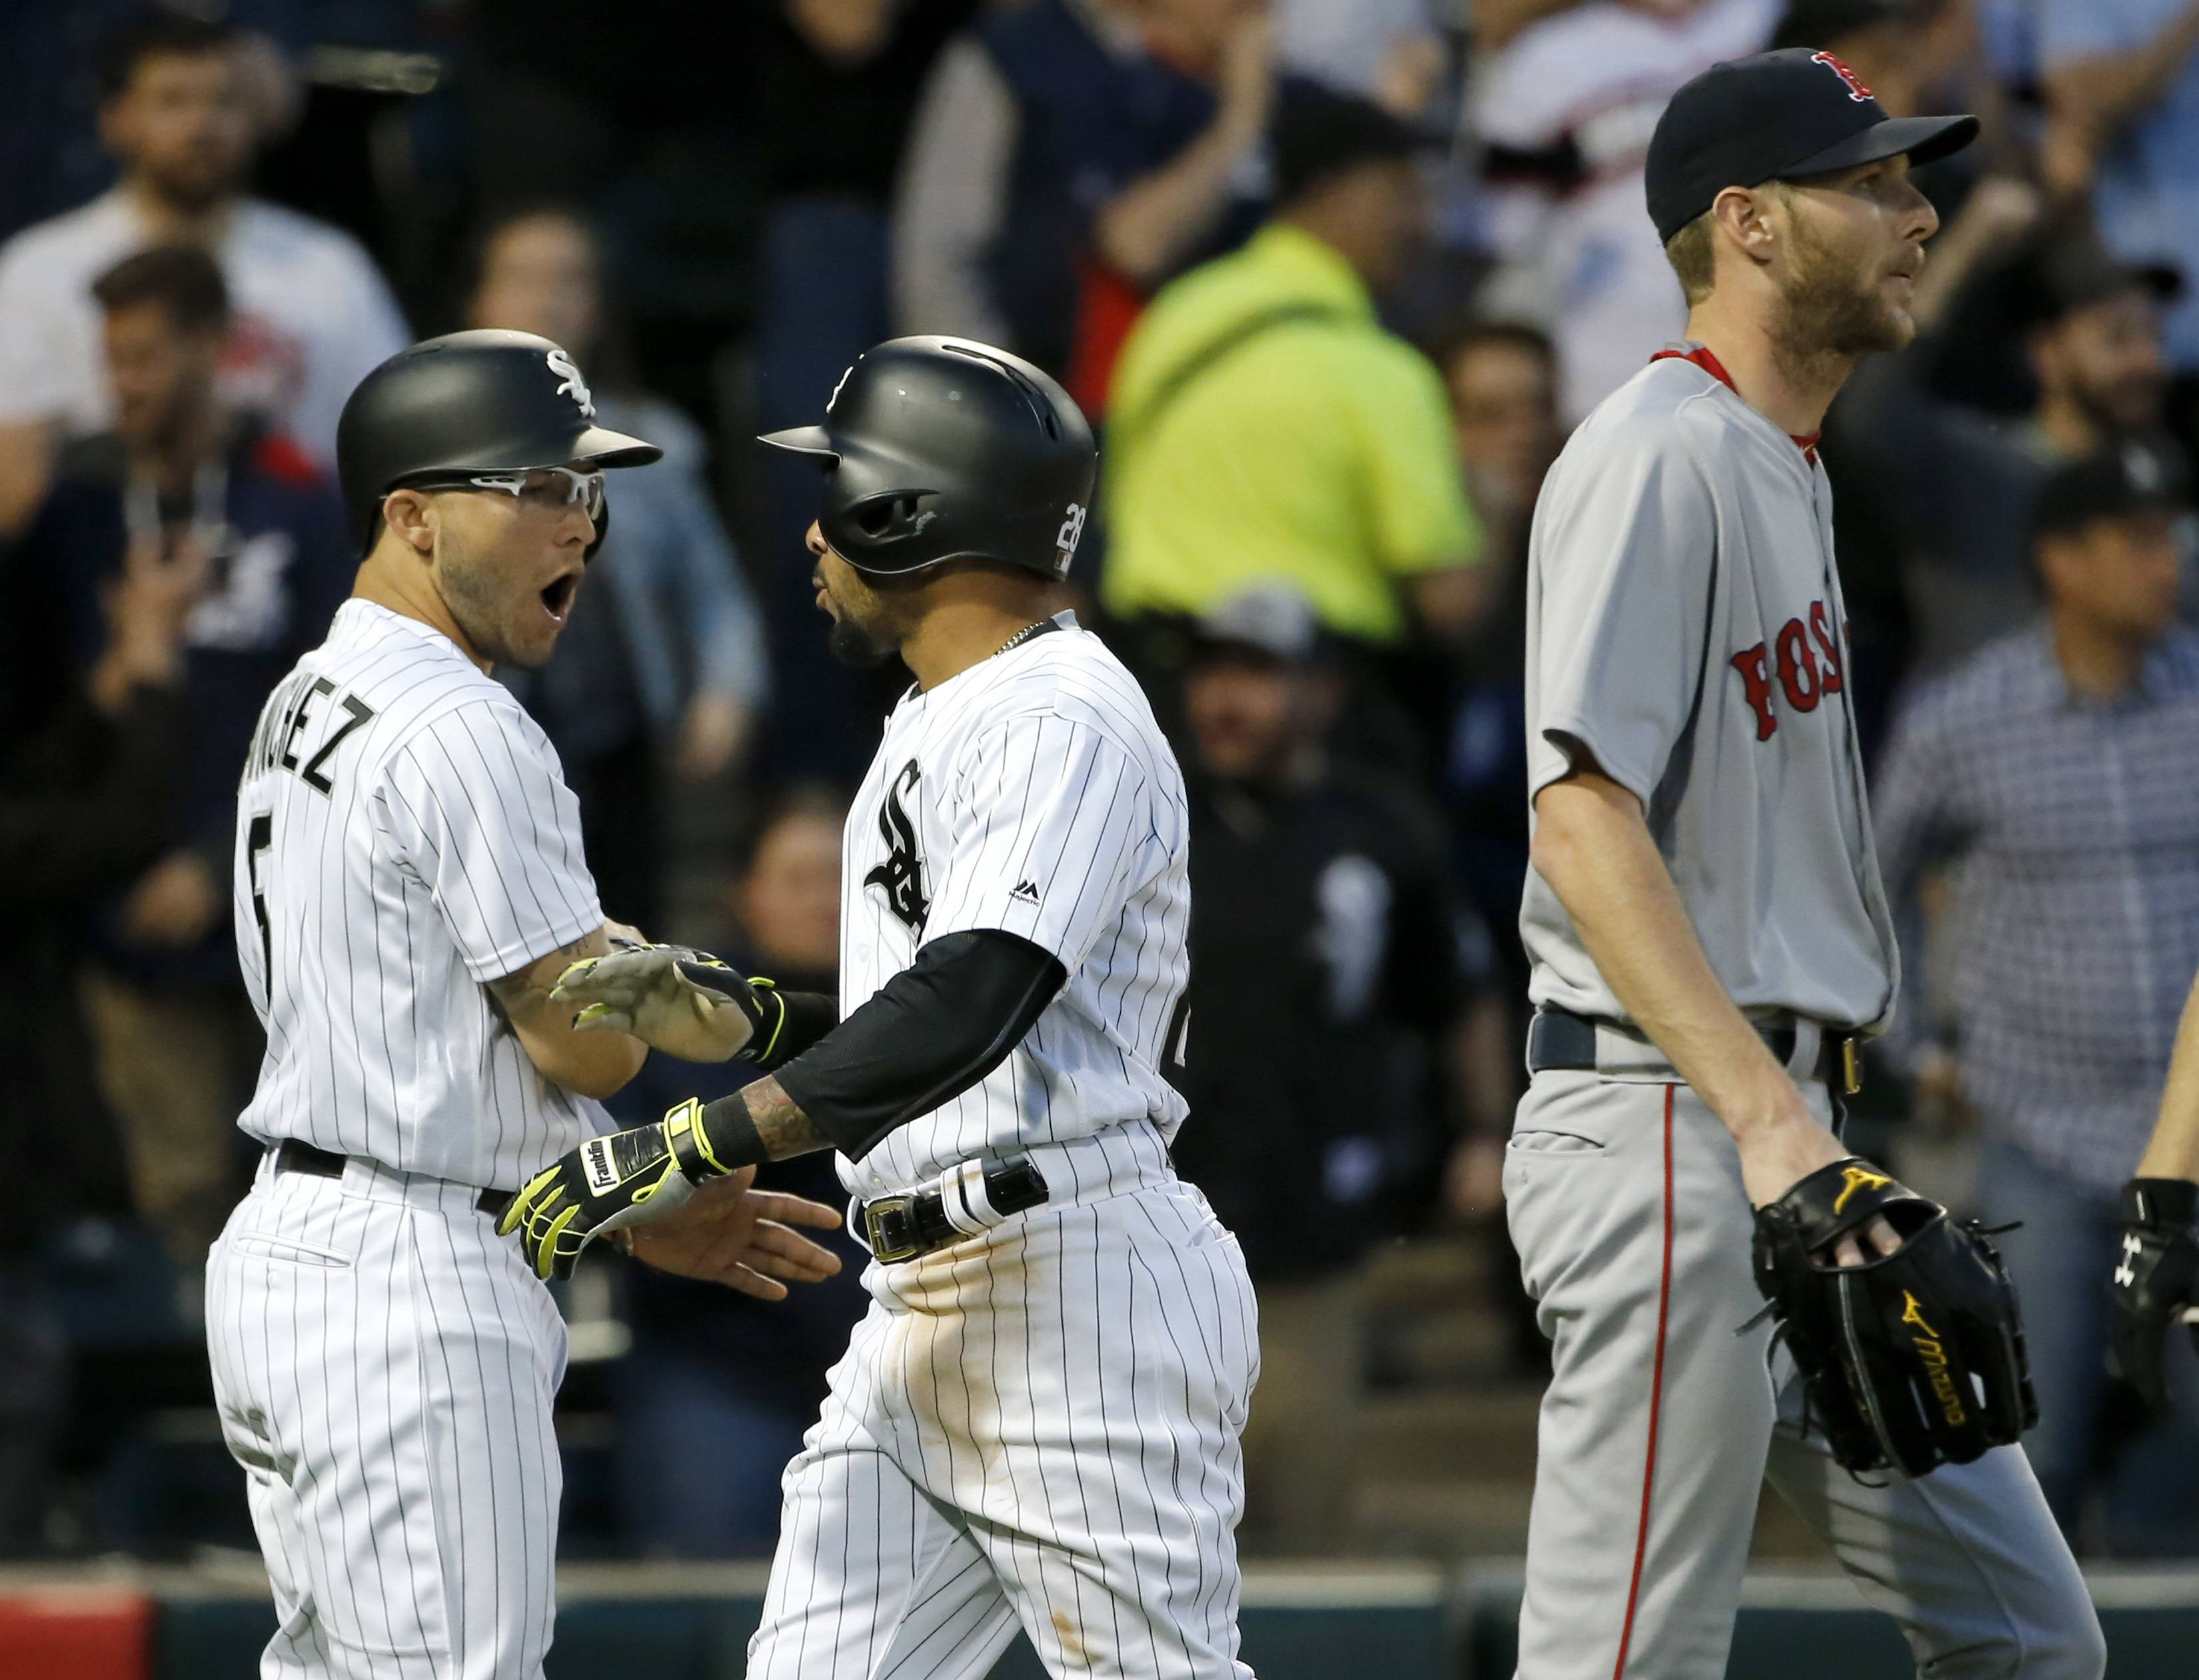 Chicago White Sox's Yolmer Sanchez, left, and Leury Garcia, center, celebrate after scoring on a single by Jose Abreu, off a pitch from Boston Red Sox starting pitcher Chris Sale, right, during the second inning of a baseball game Tuesday, May 30, 2017, in Chicago. (AP Photo/Charles Rex Arbogast)